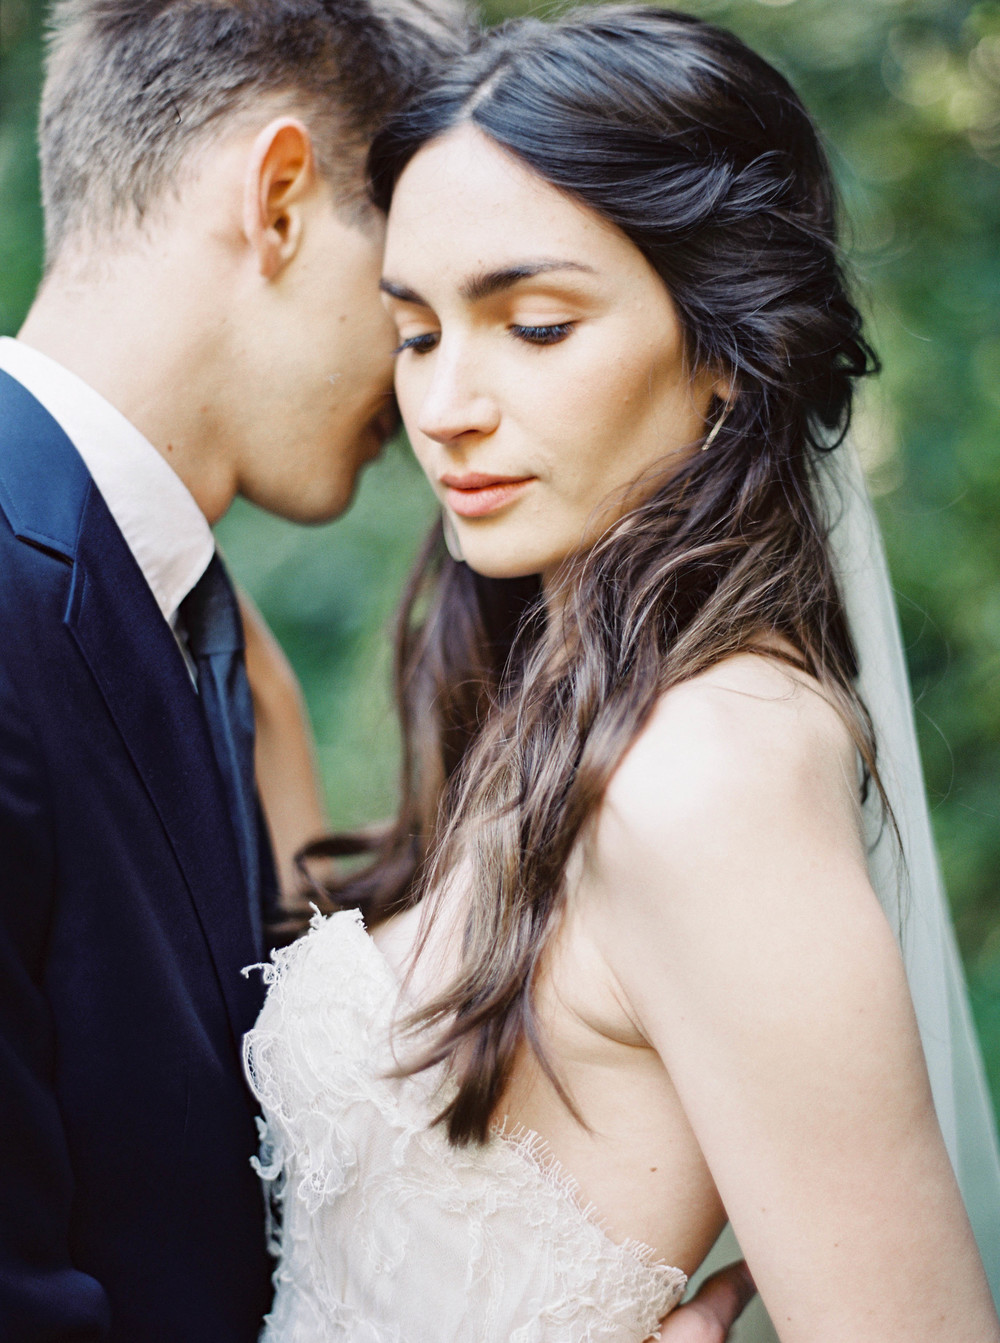 Meghan Mehan Fine Art Photography - Elk, California - Wedding Portraits_Jillian and Alex - 009.jpg